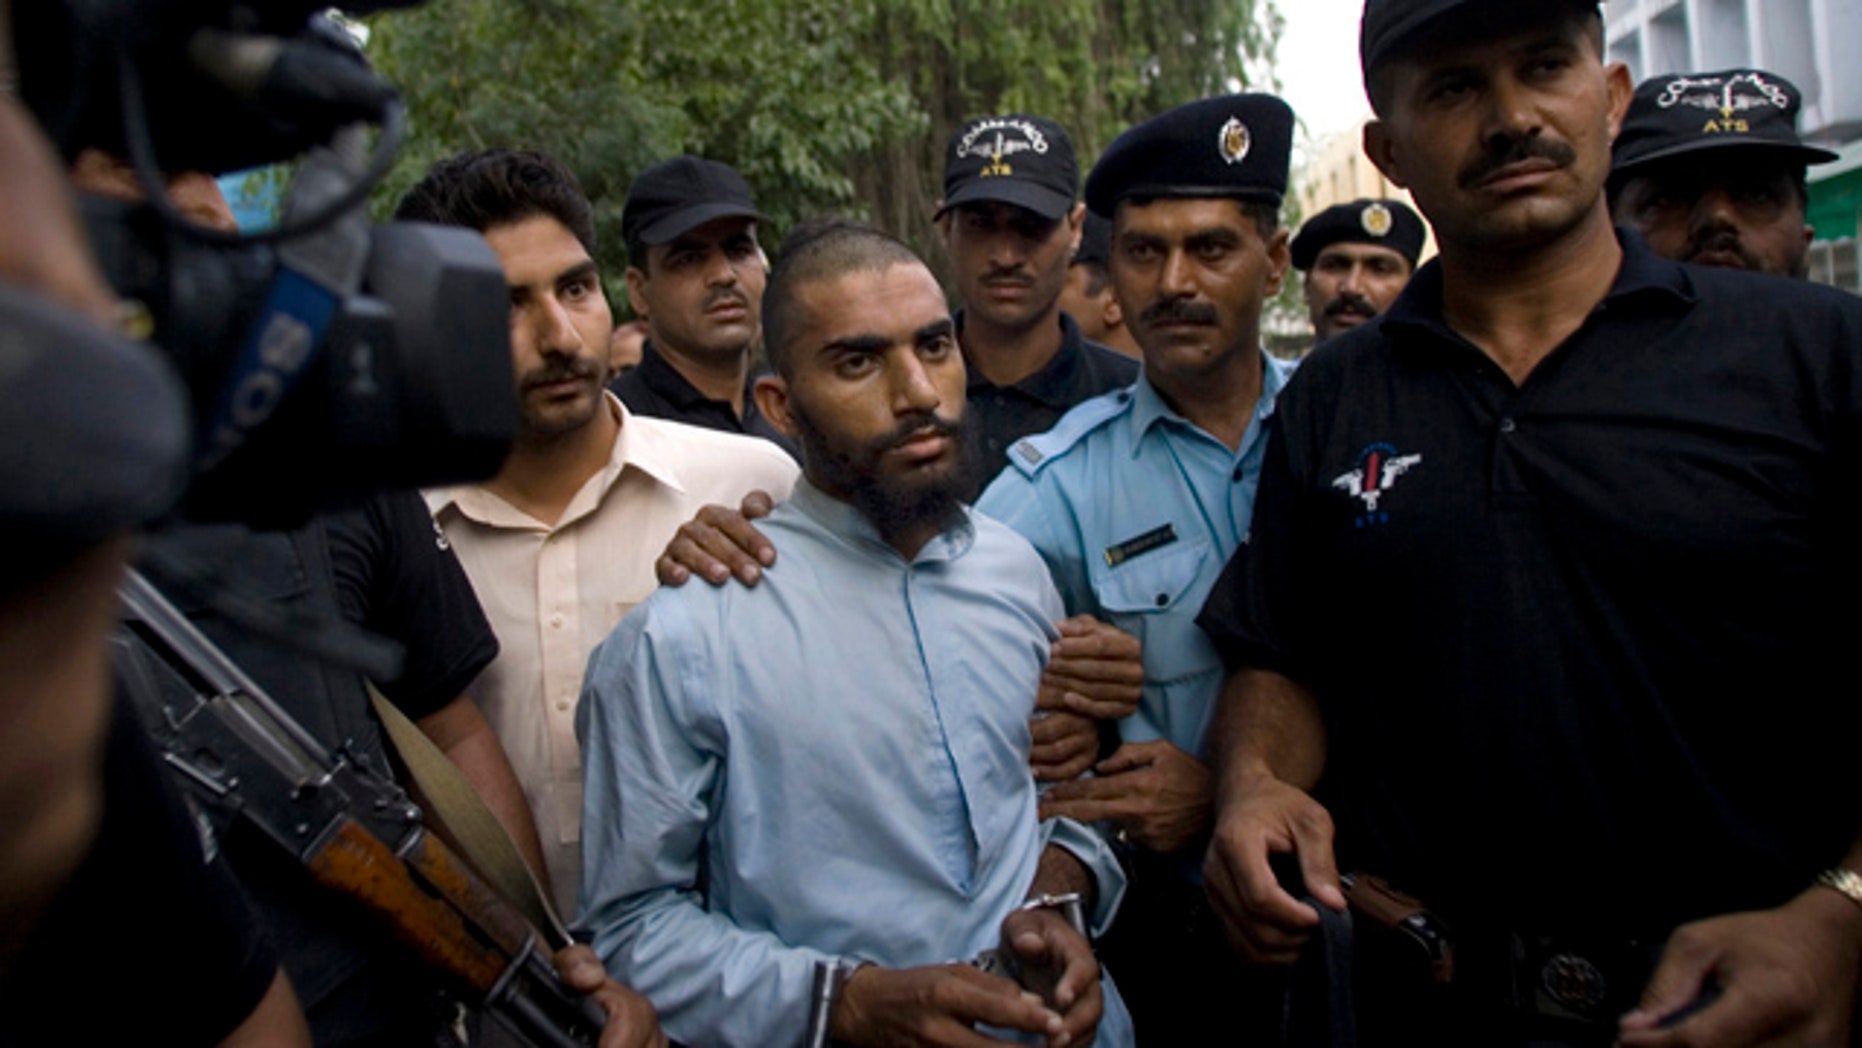 FILE - In this June 1, 2009 file photo, Pakistani police officers escort detained suspect militant Fida Ullah, center, who studied from radical Red Mosque in Islamabad, Pakistan. Pakistani authorities now believe a dangerous new militant group, out to avenge a deadly army assault on the mosque three years ago, has carried out several major bombings in the capital previously blamed on the Taliban. (AP Photo/Anjum Naveed, File)